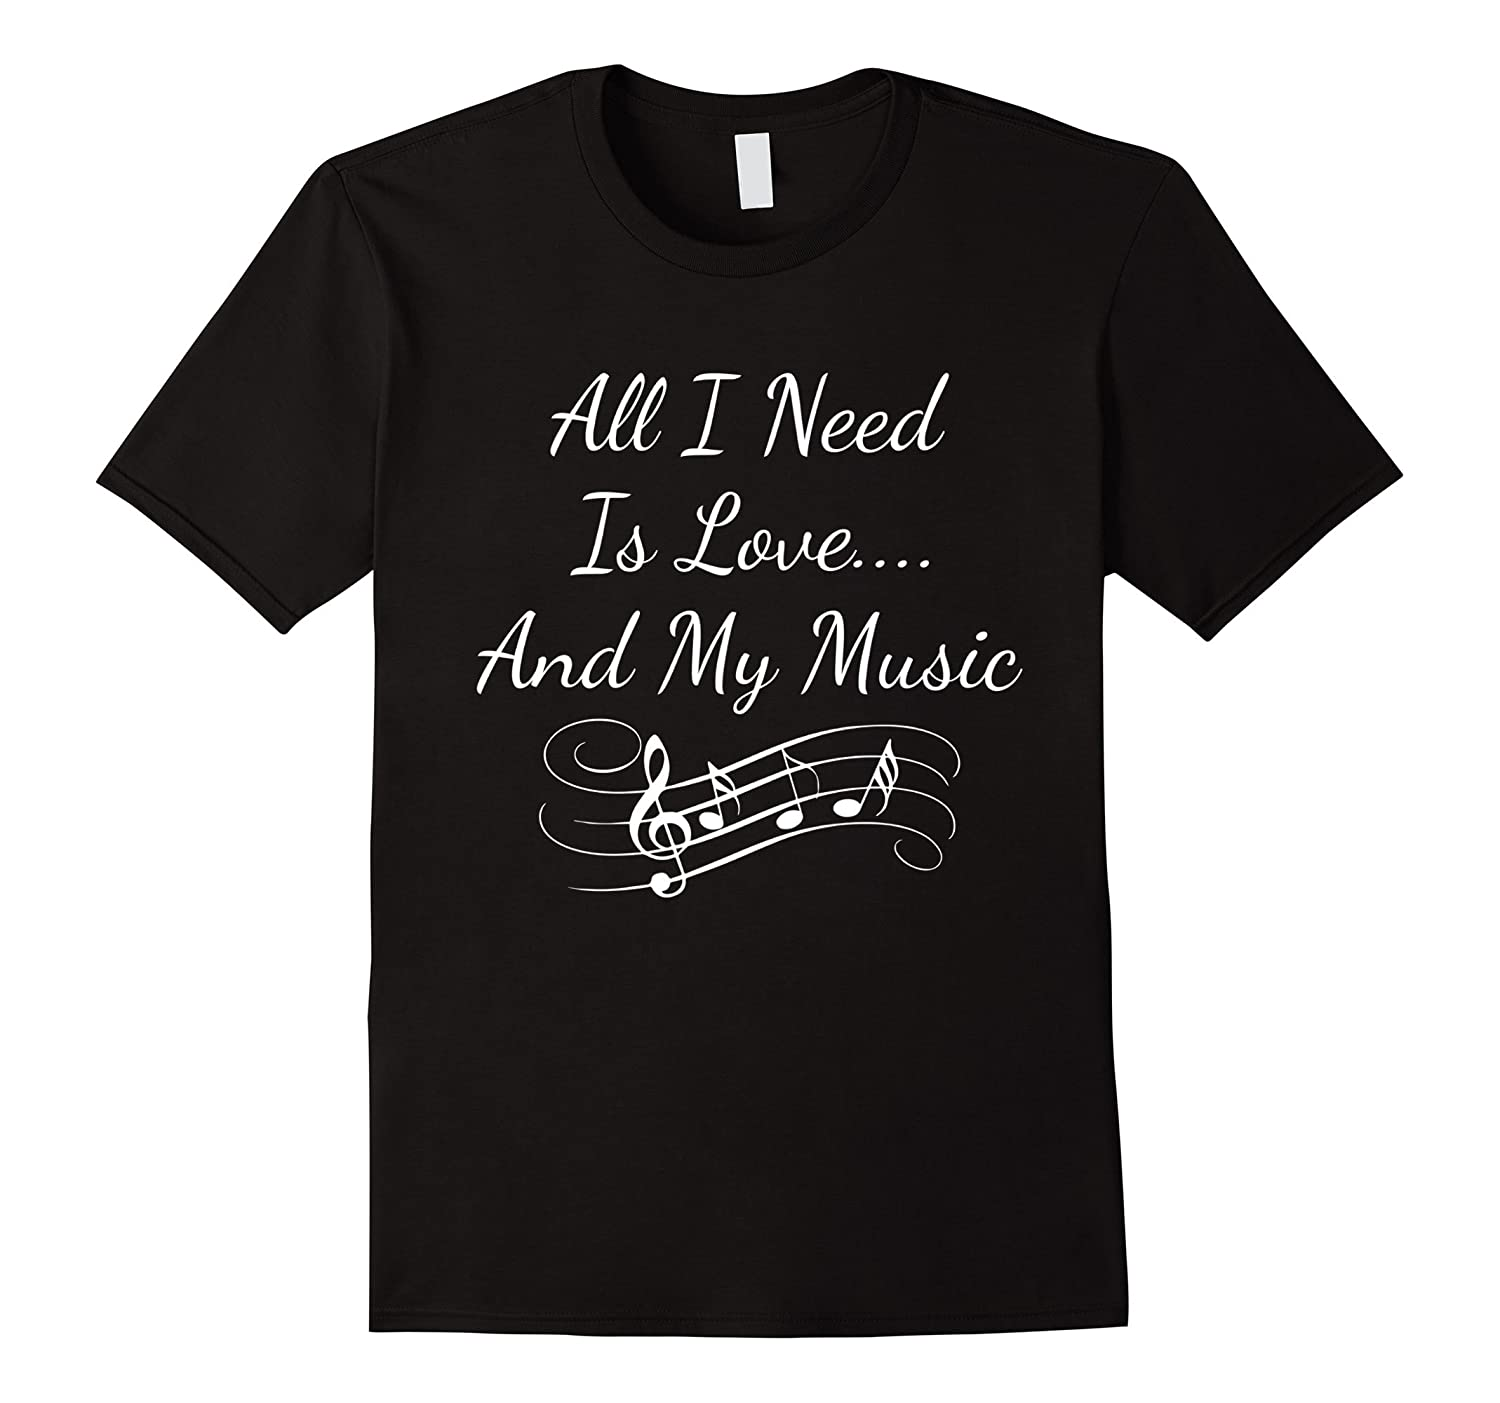 ALL I NEED IS LOVE AND MY MUSIC TO MAKE MY LIFE COMPLETE-Vaci